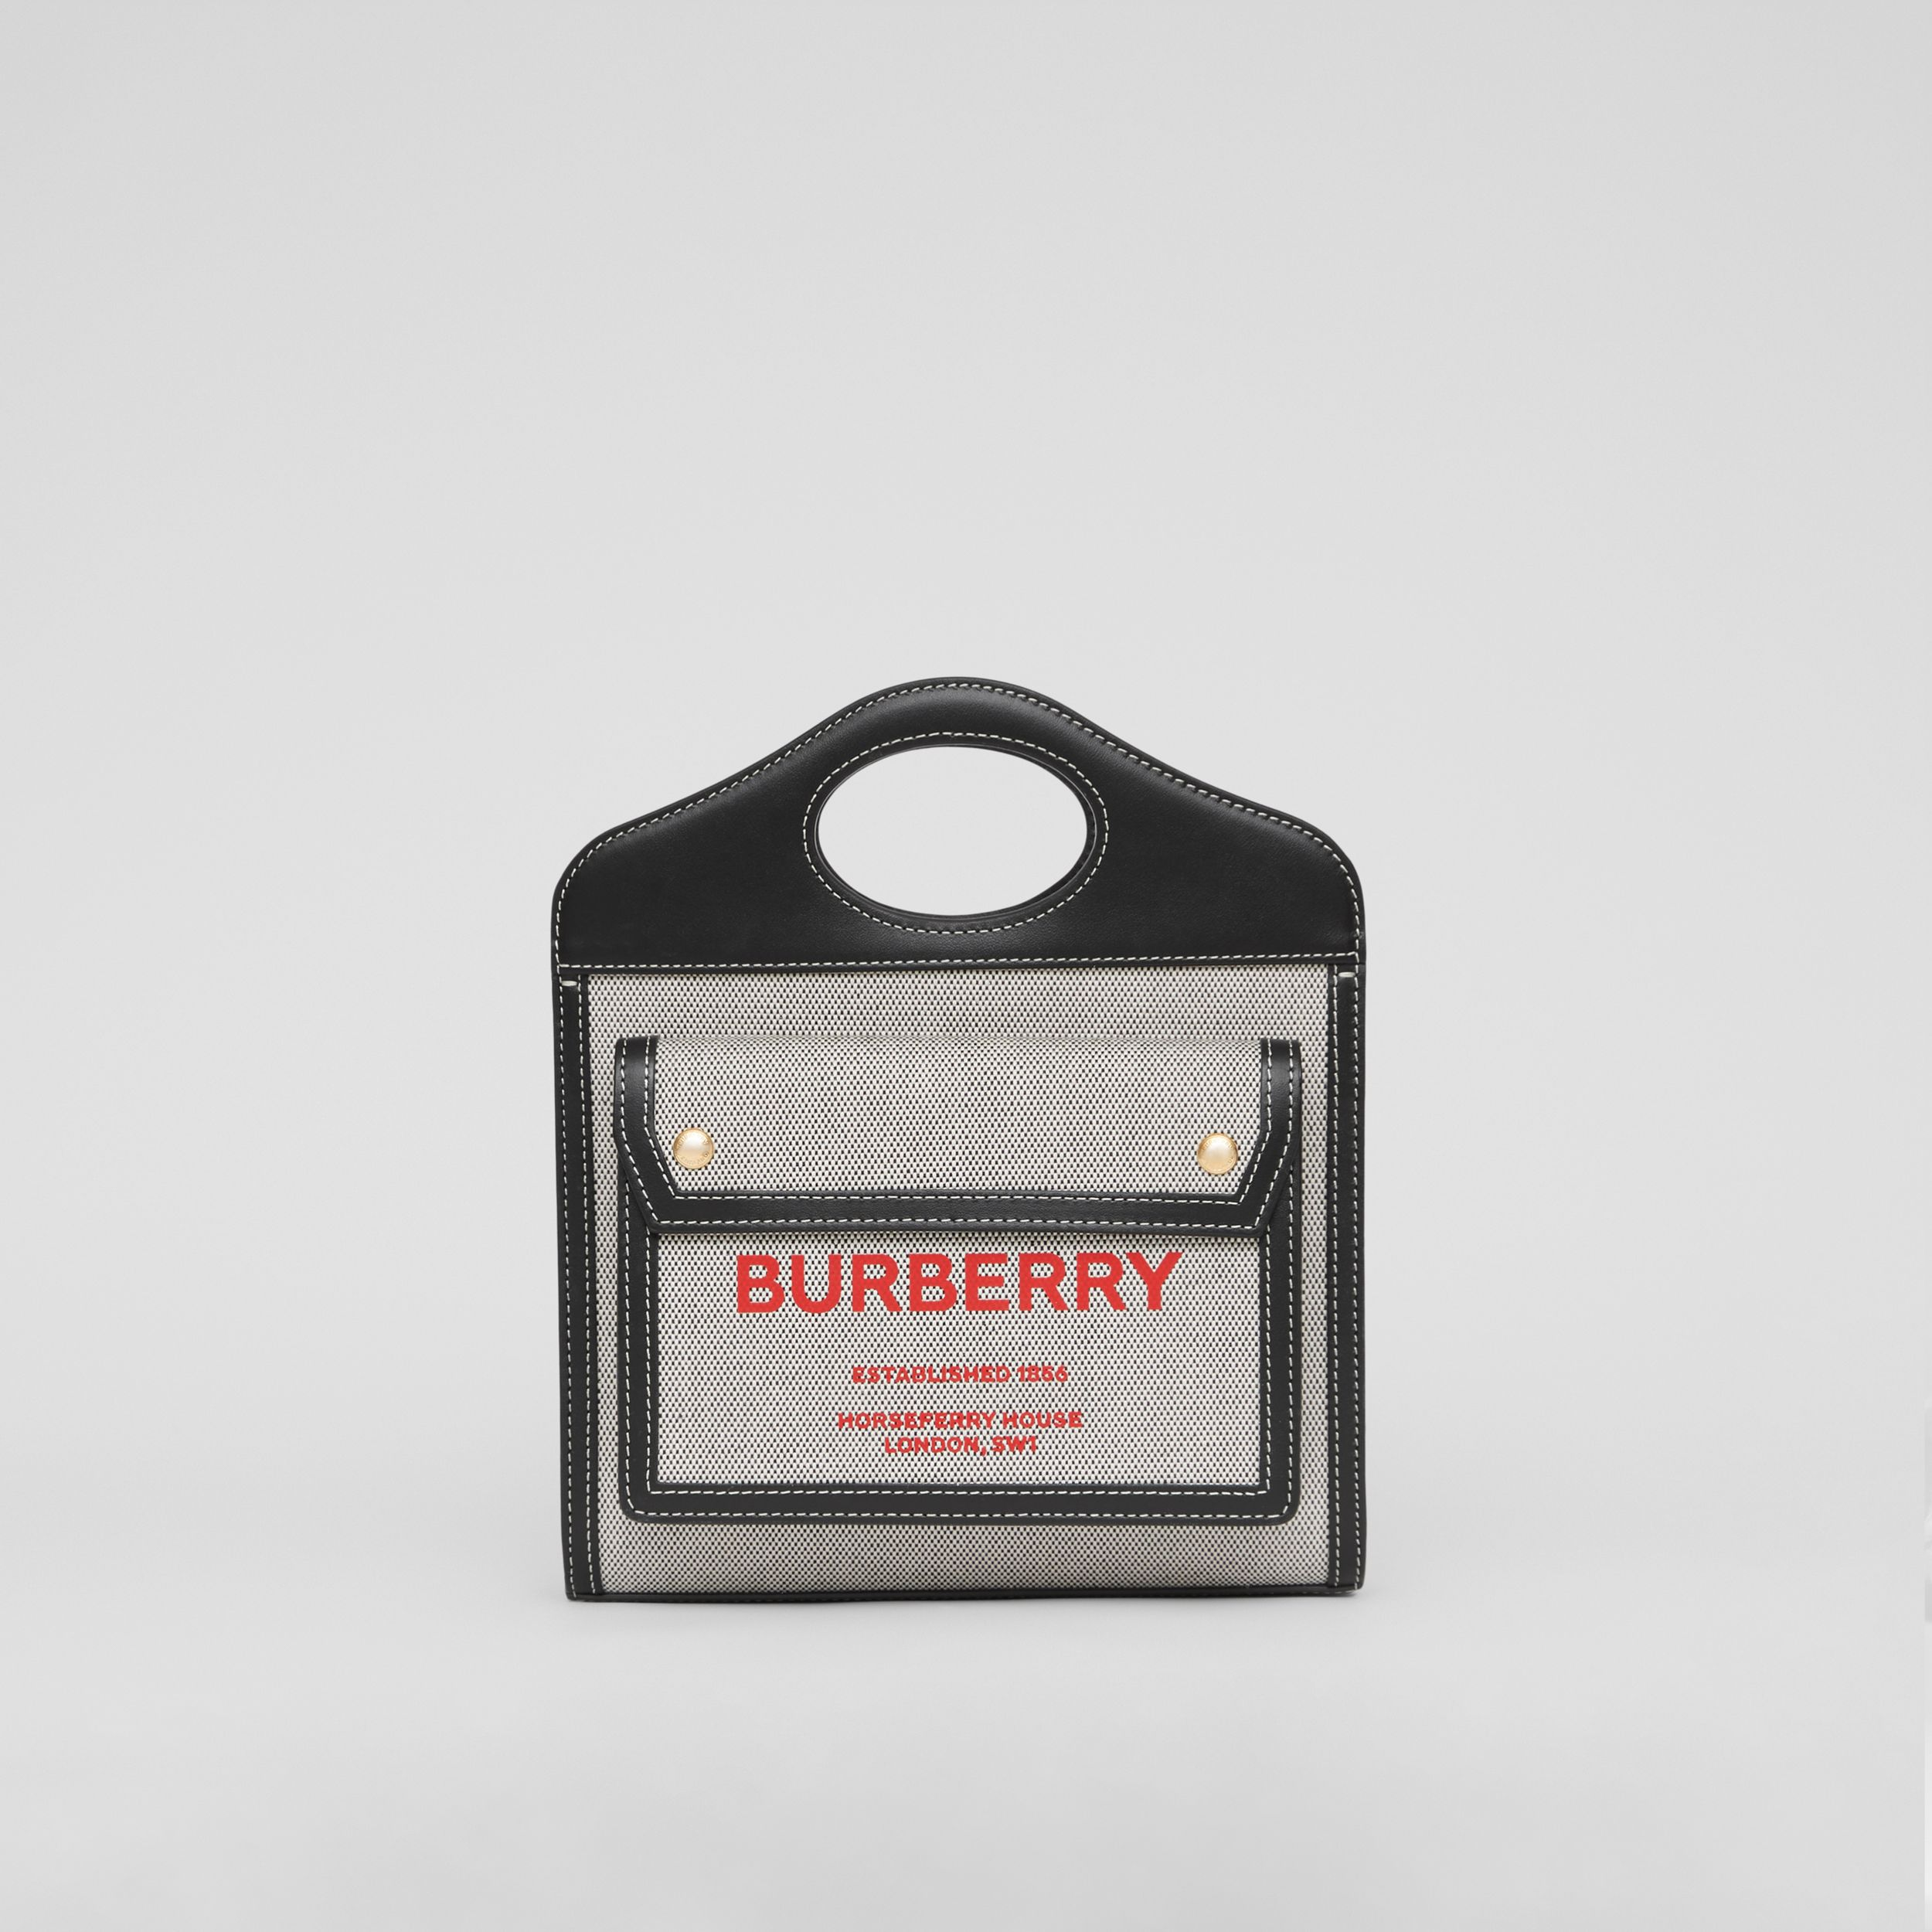 Mini Two-tone Canvas and Leather Pocket Bag in Black/fiery Red - Women | Burberry - 1